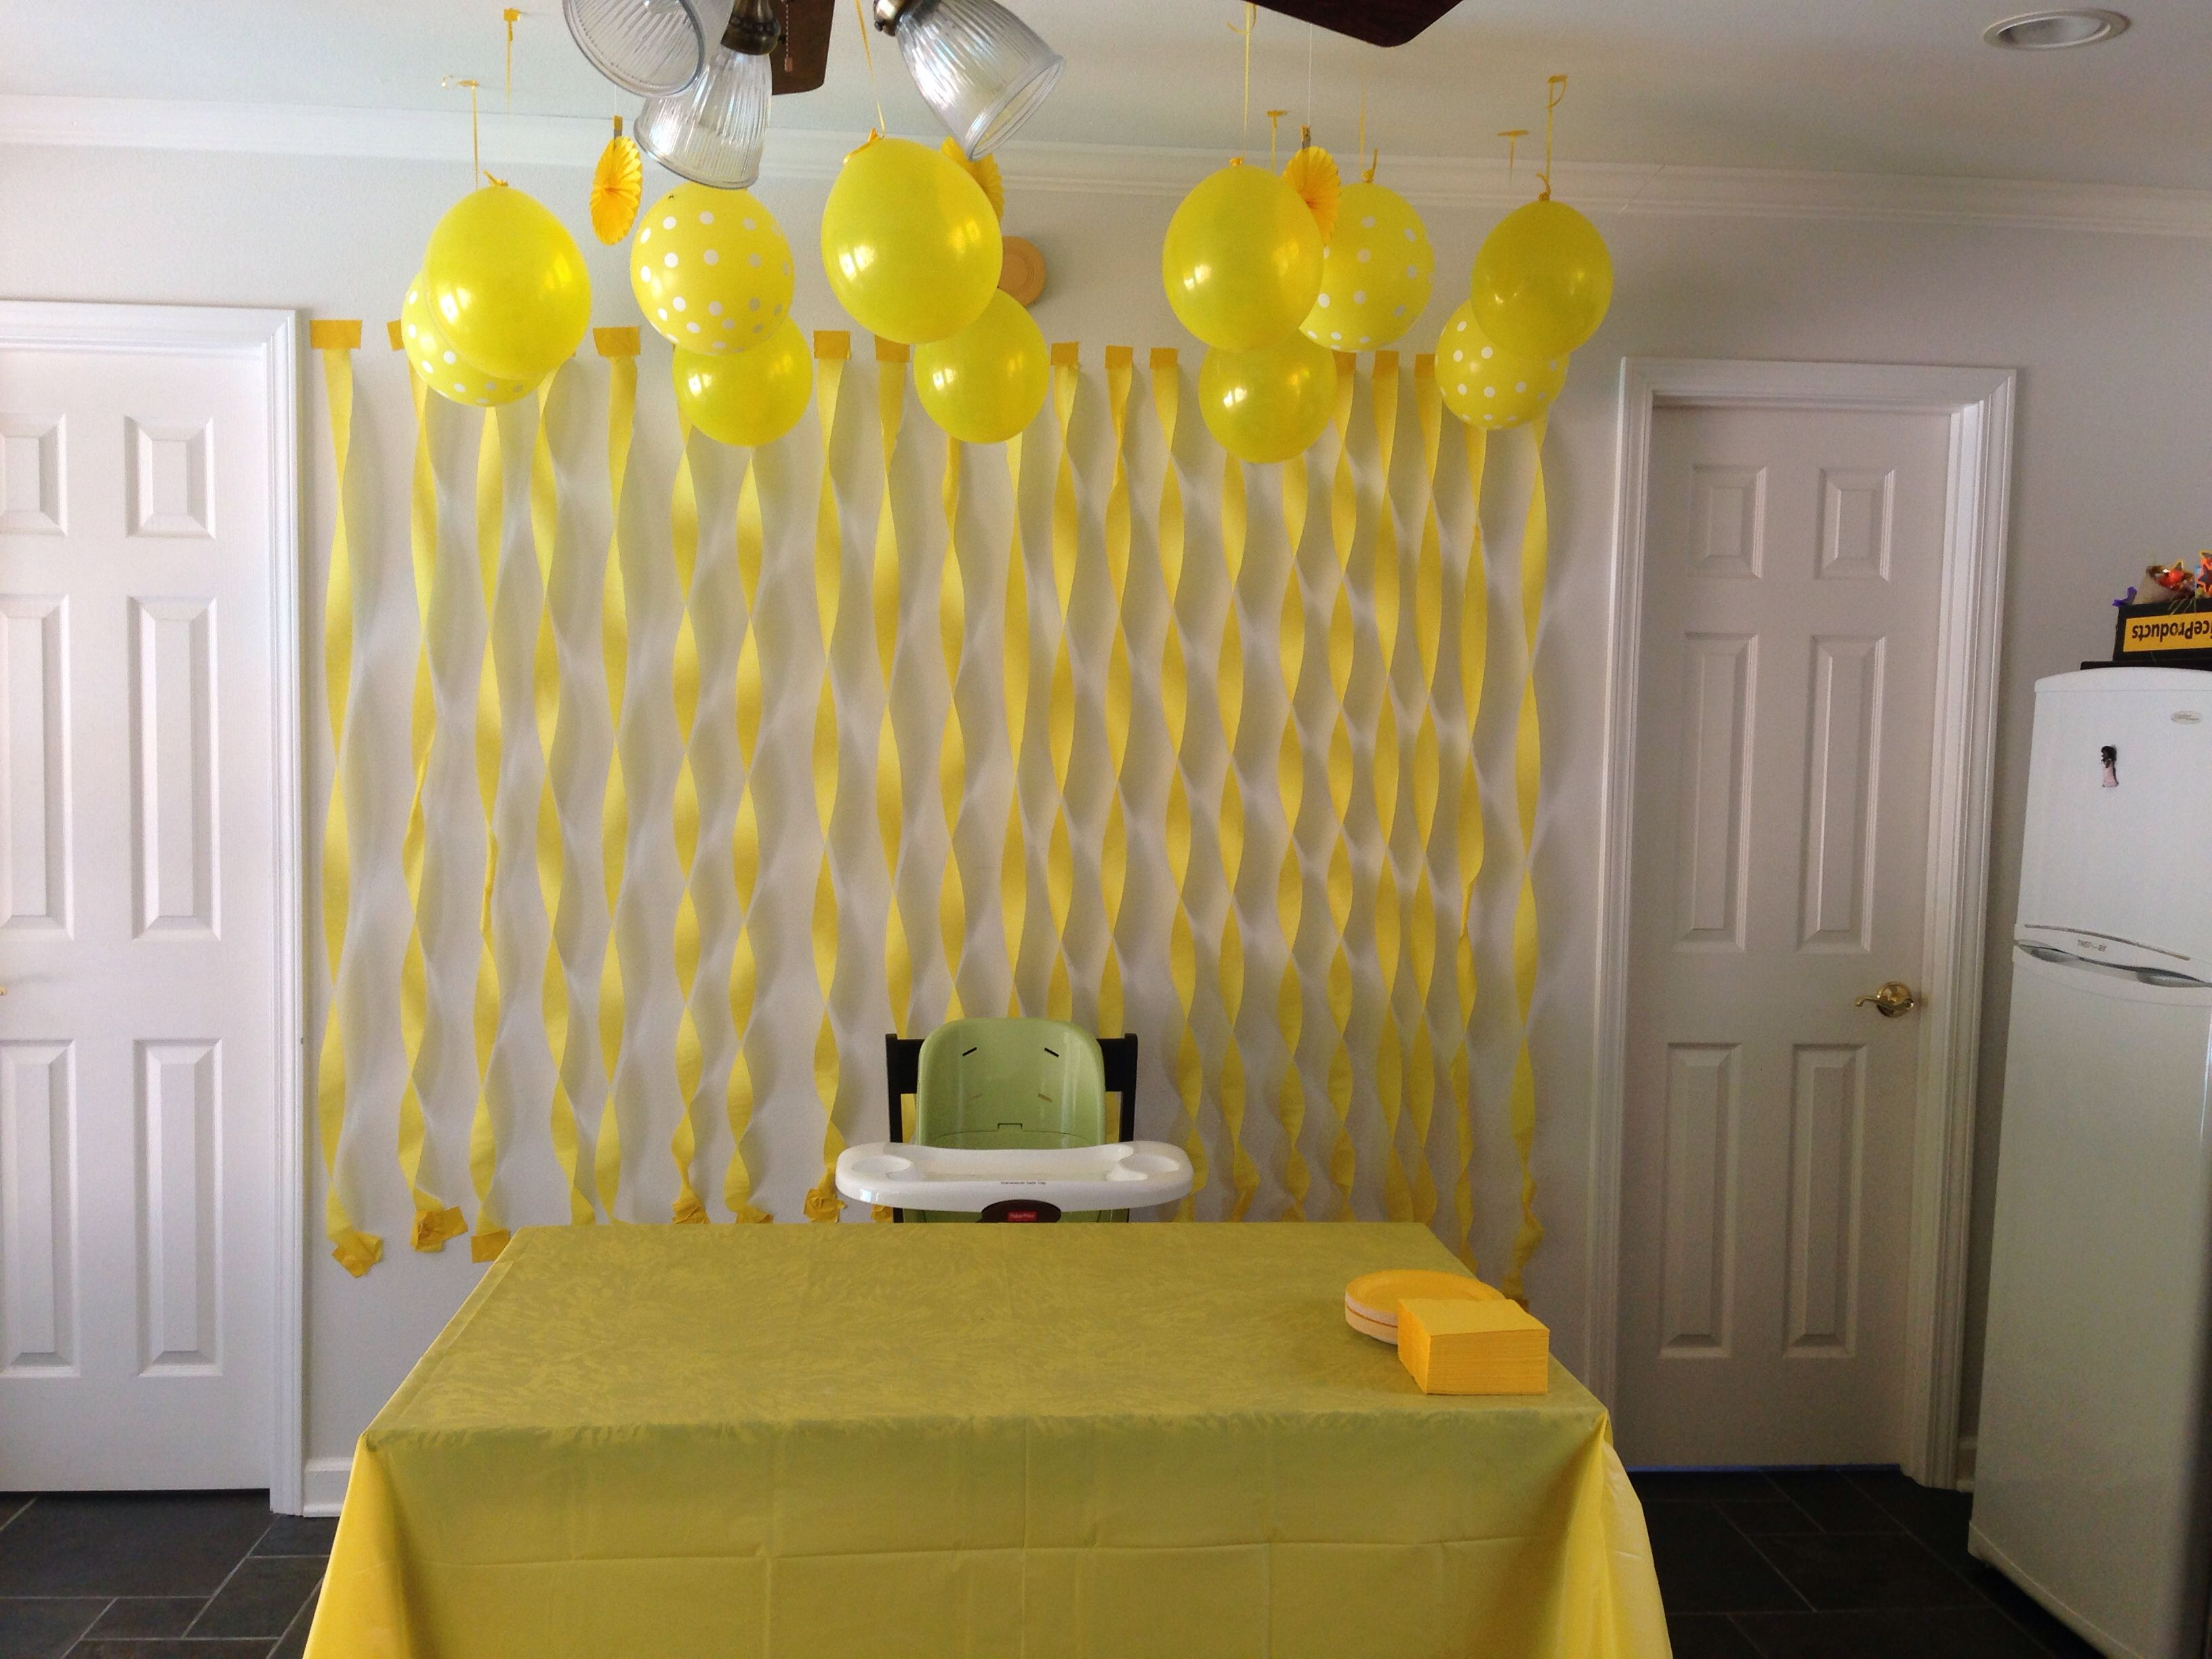 26 best Birthday ideas images on Pinterest | Birthdays, Birthday ...